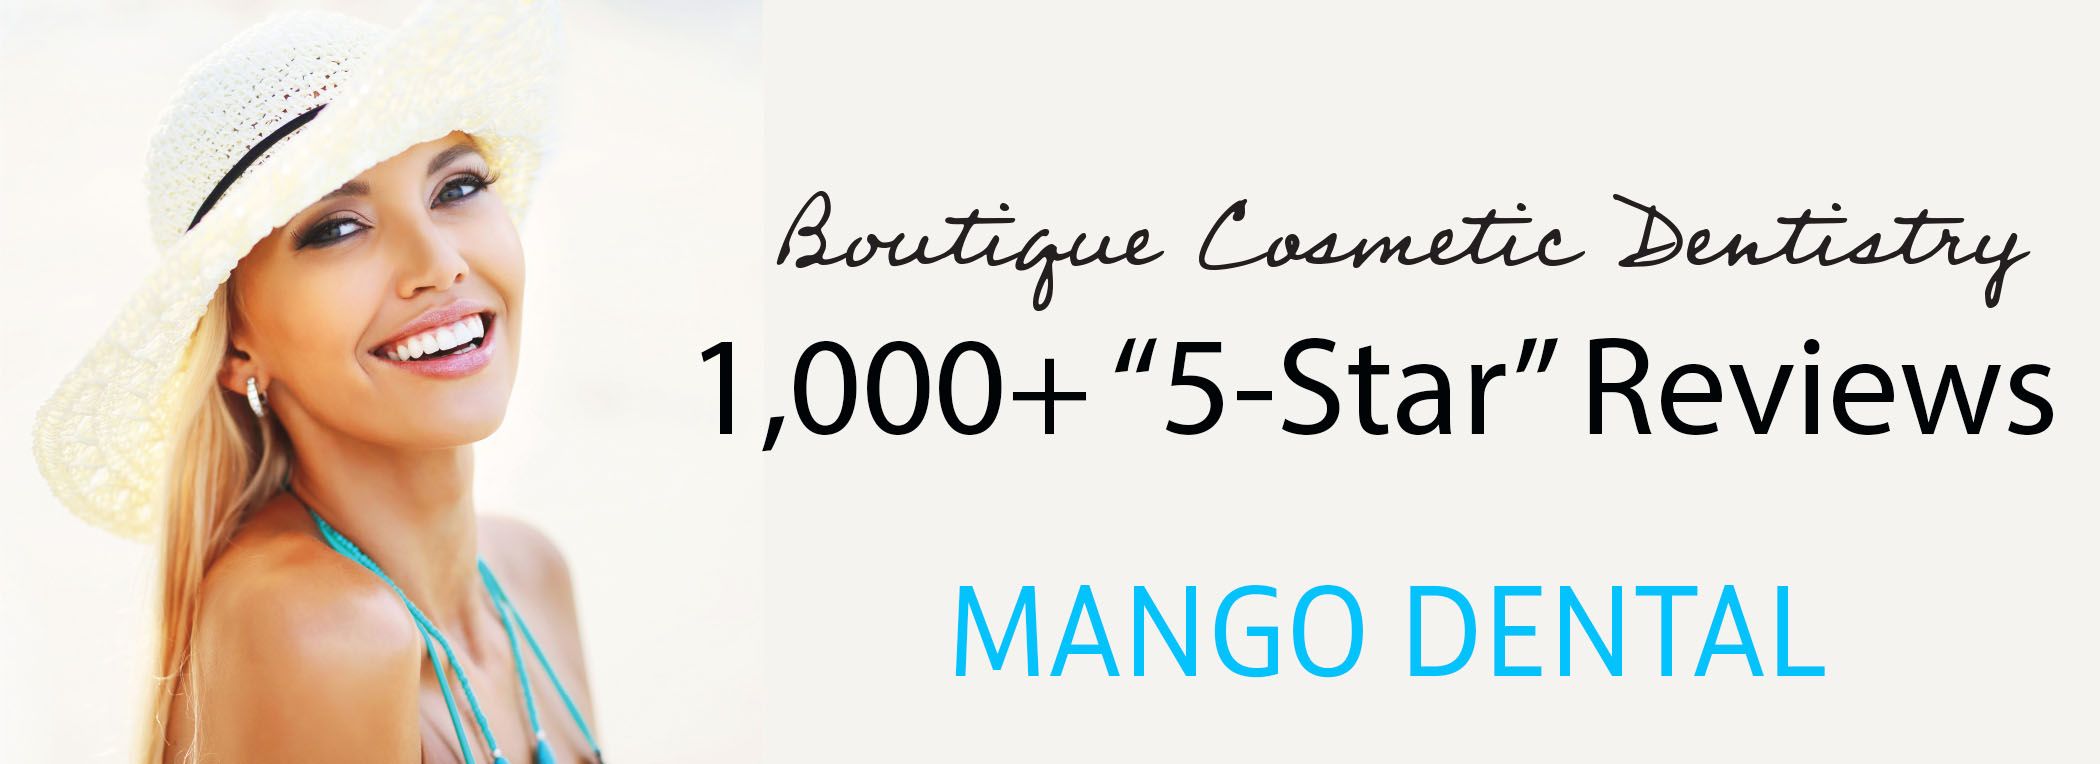 1,000 5-Star Reviews for Mango Dental